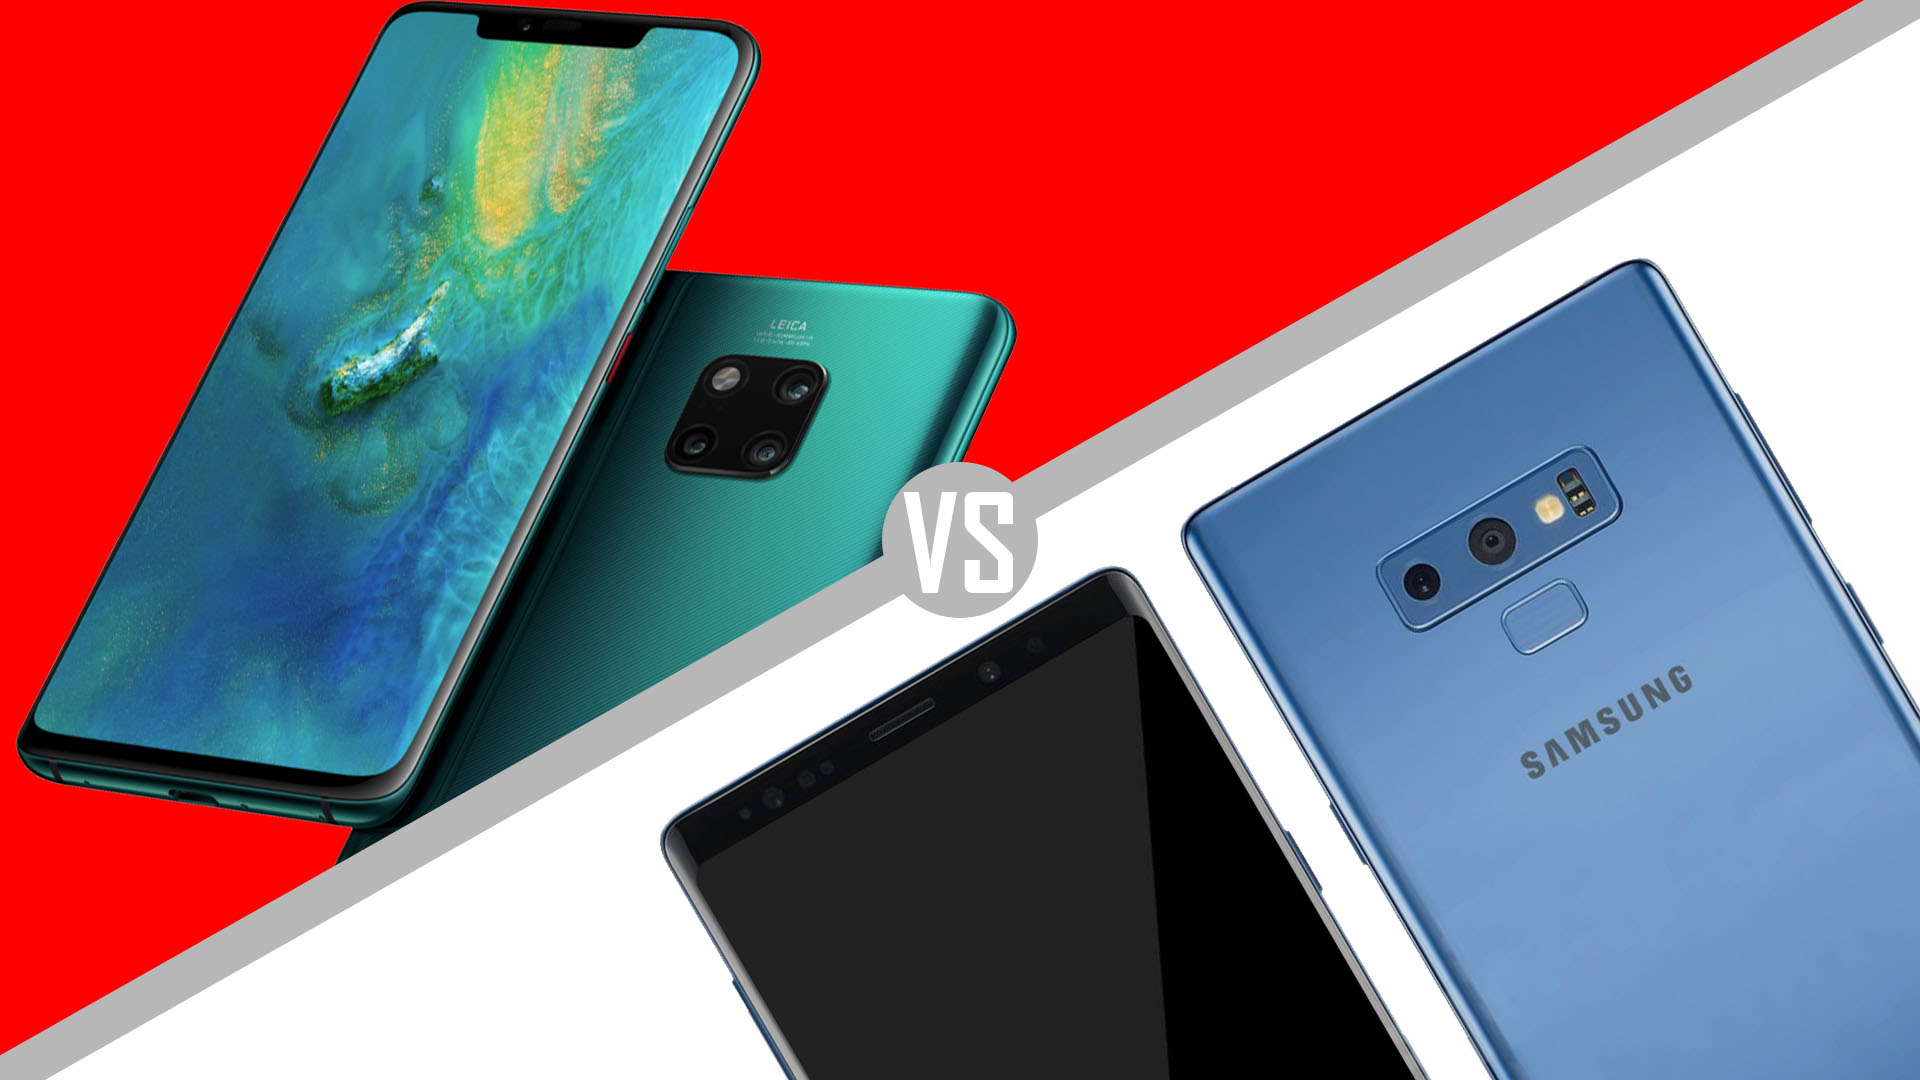 Camera Shootout: Huawei Mate 20 Pro vs Galaxy Note 9